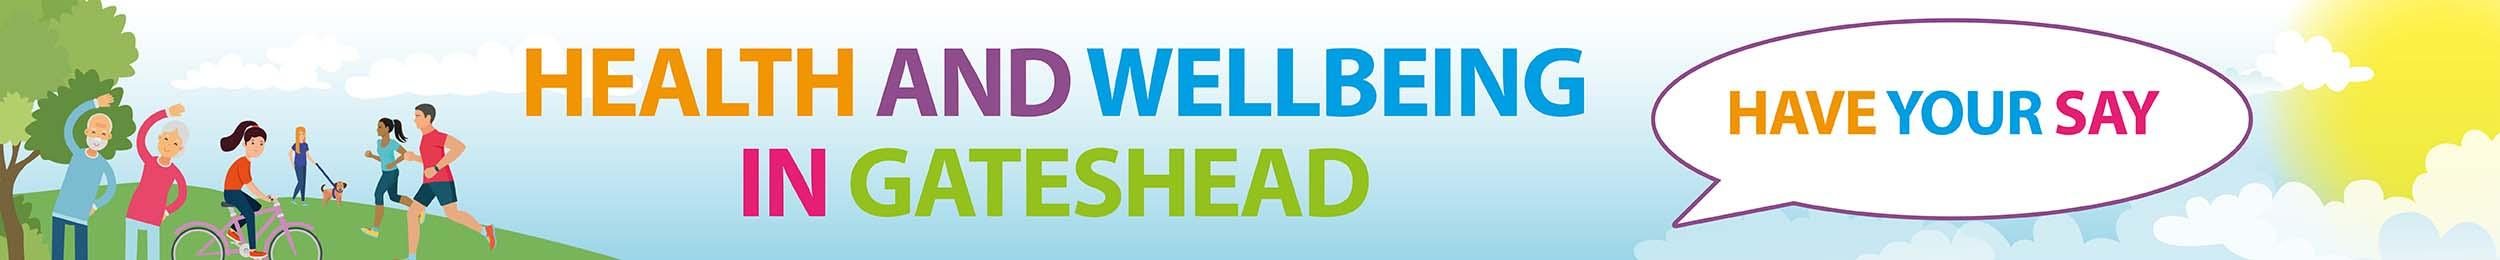 Health and wellbeing consultation header